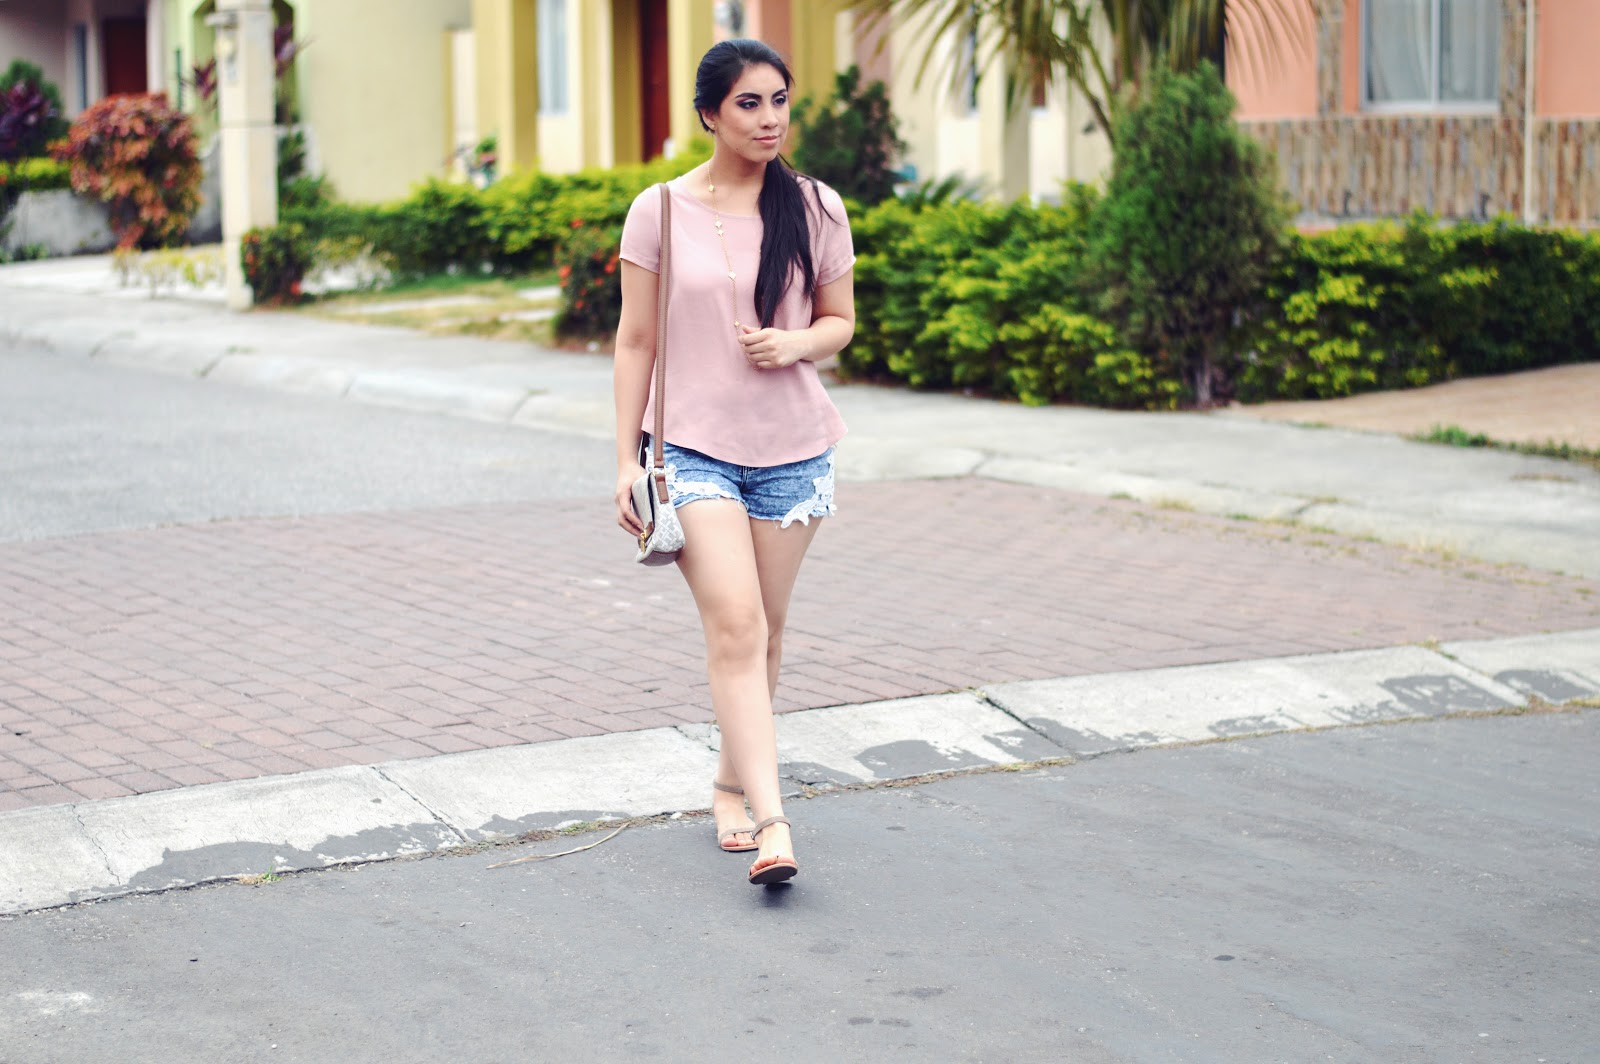 silvia-armas-simple-beauty-pink-denim-fashion-makeup-latina-blogger-ecuador